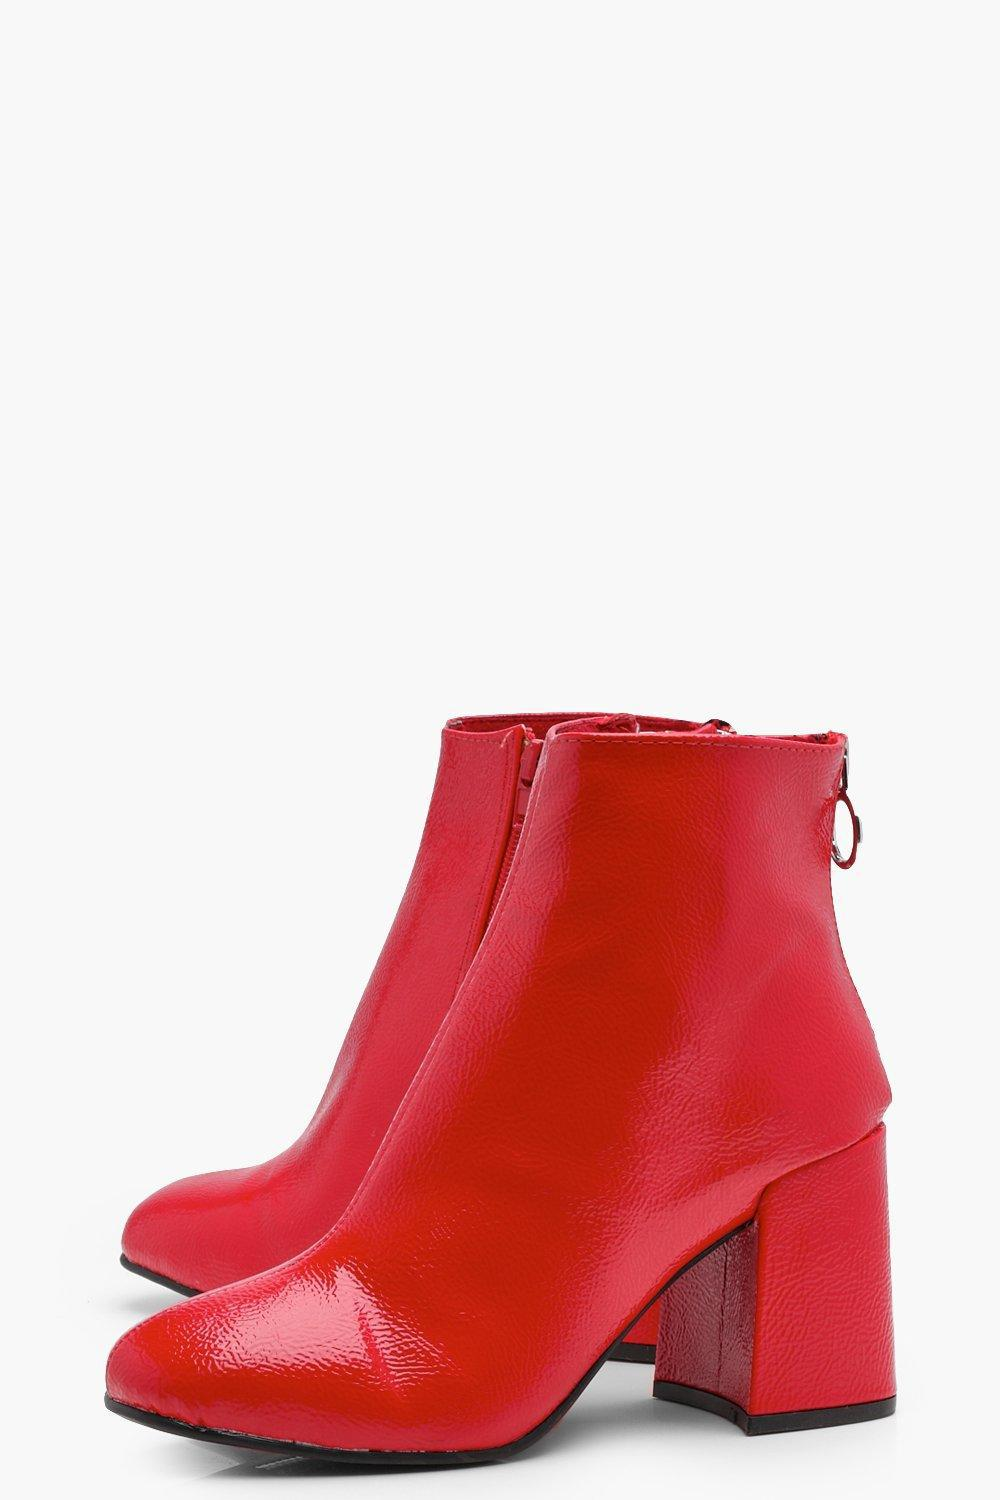 521ab6d6dd1d Boohoo - Red Patent Block Heel Ankle Shoe Boots - Lyst. View fullscreen